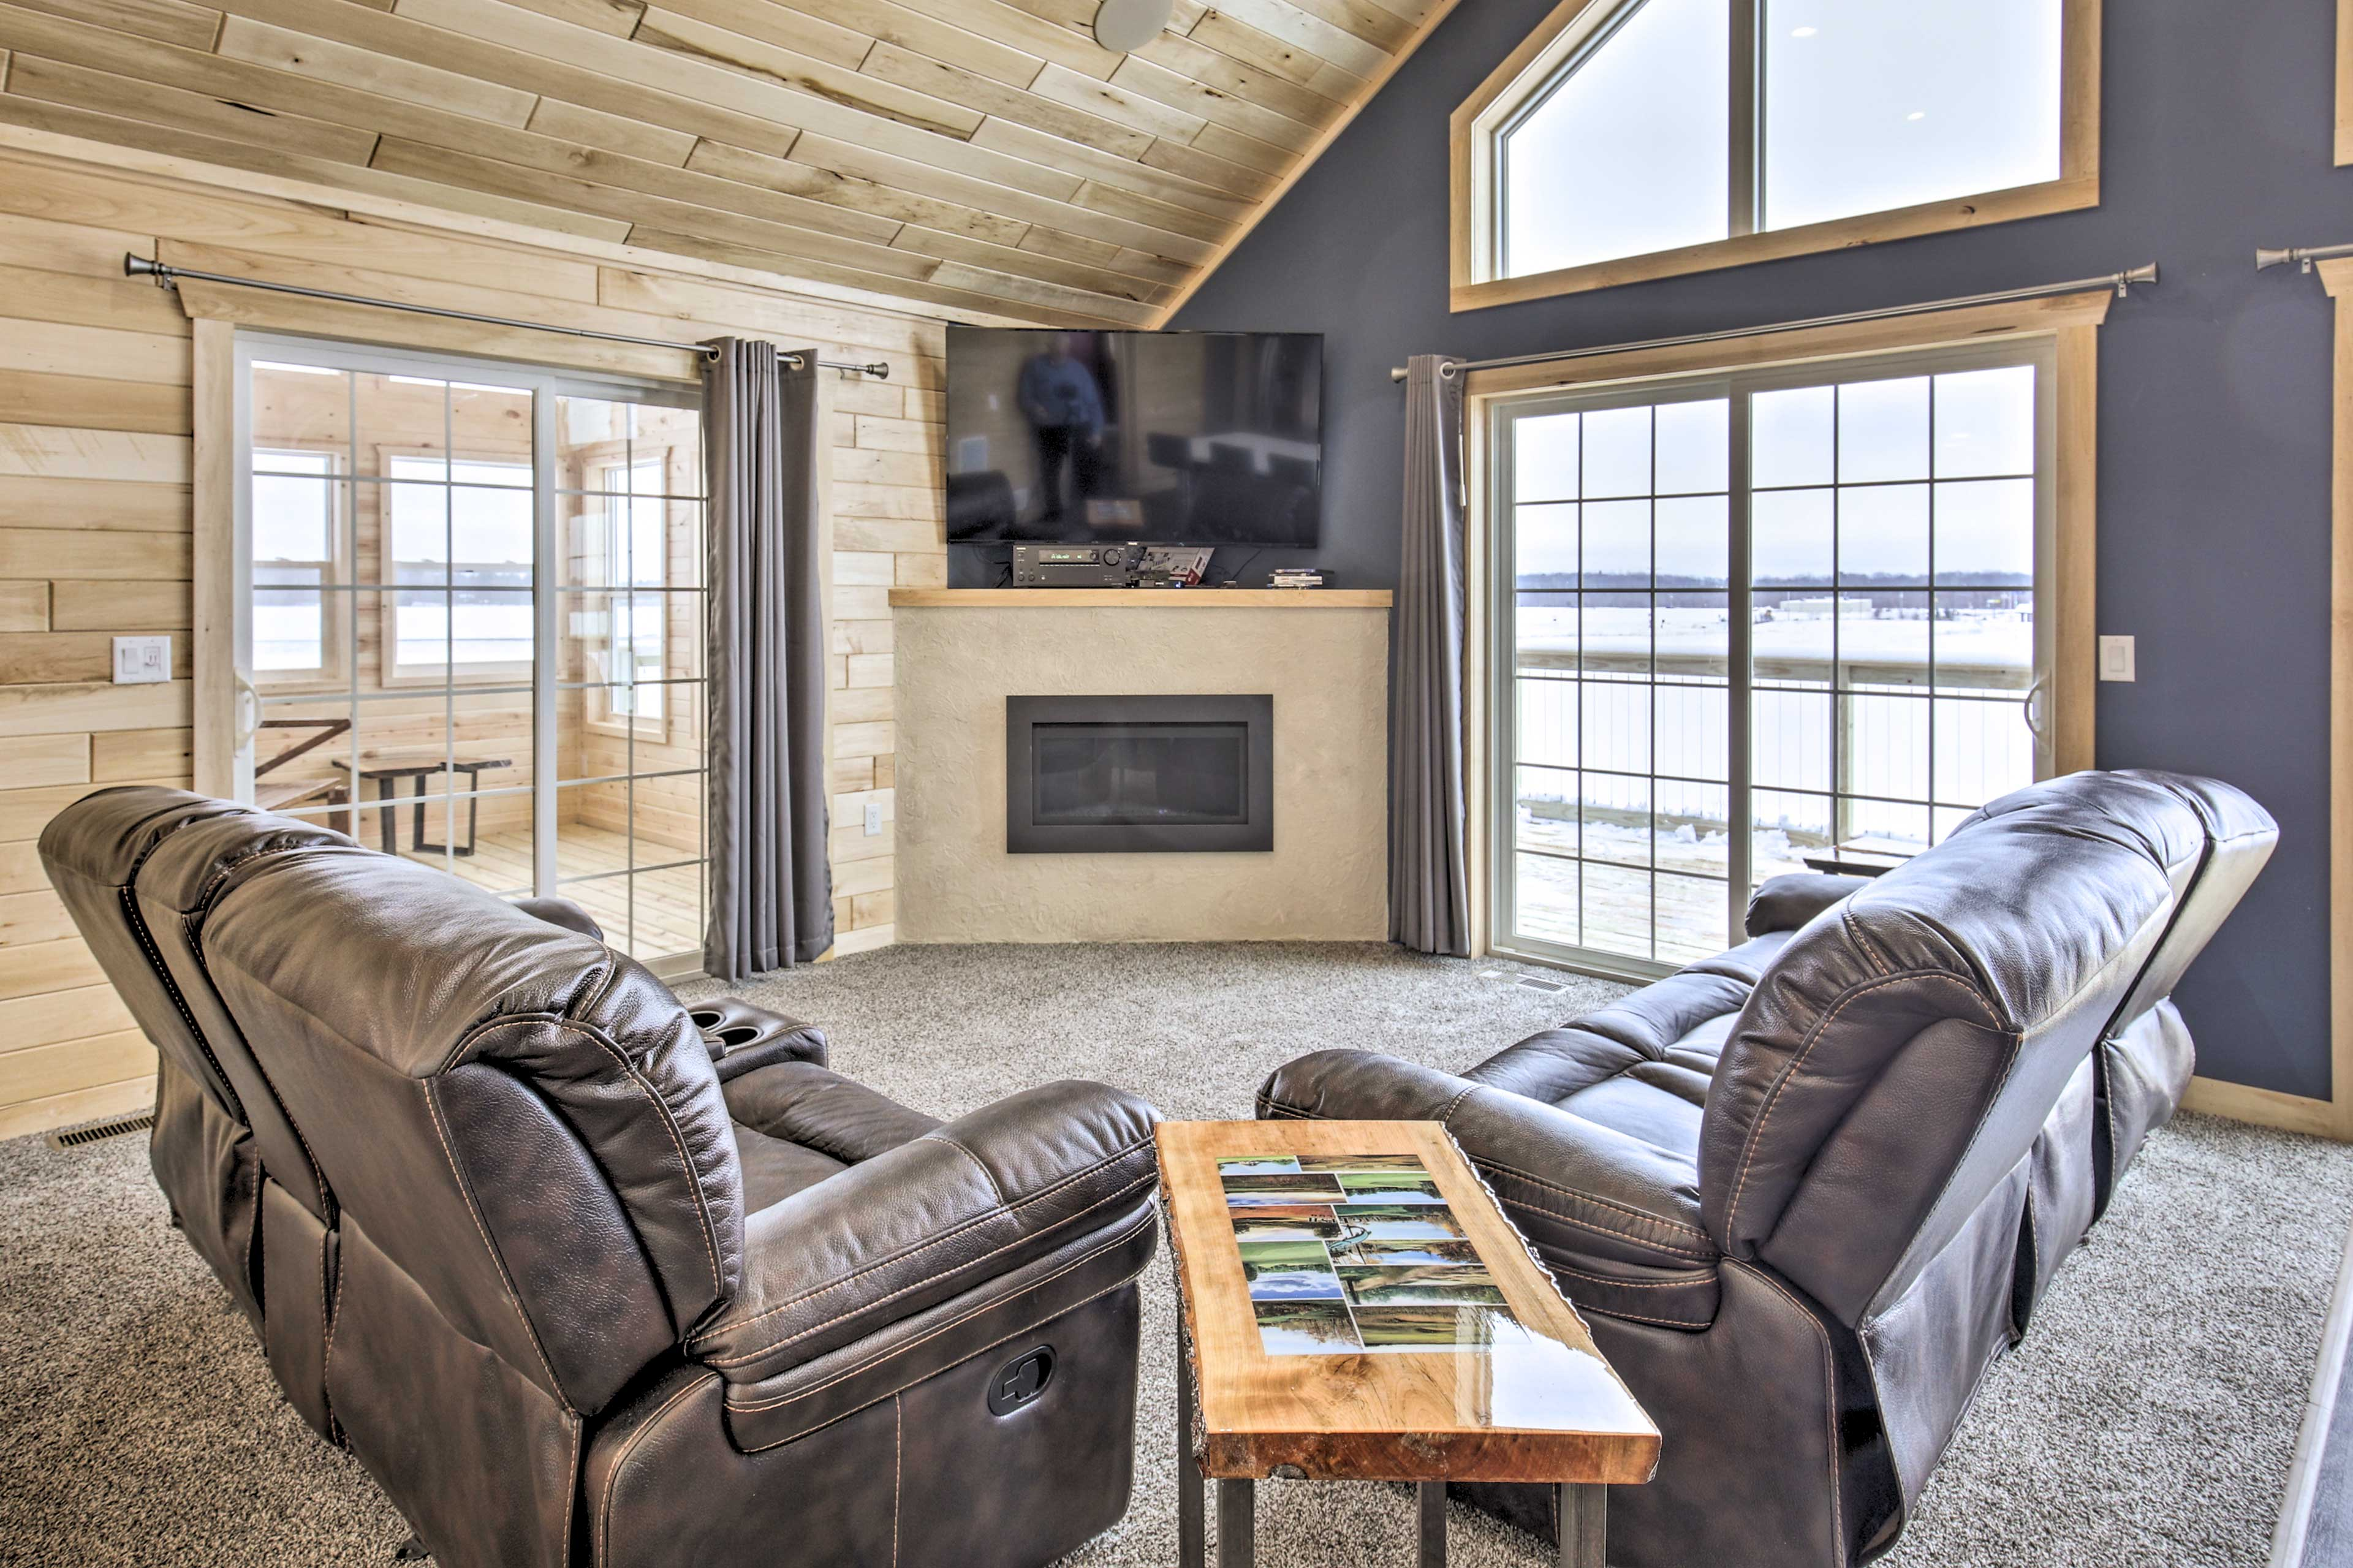 The living room is equipped with a gas fireplace and flat-screen TV.